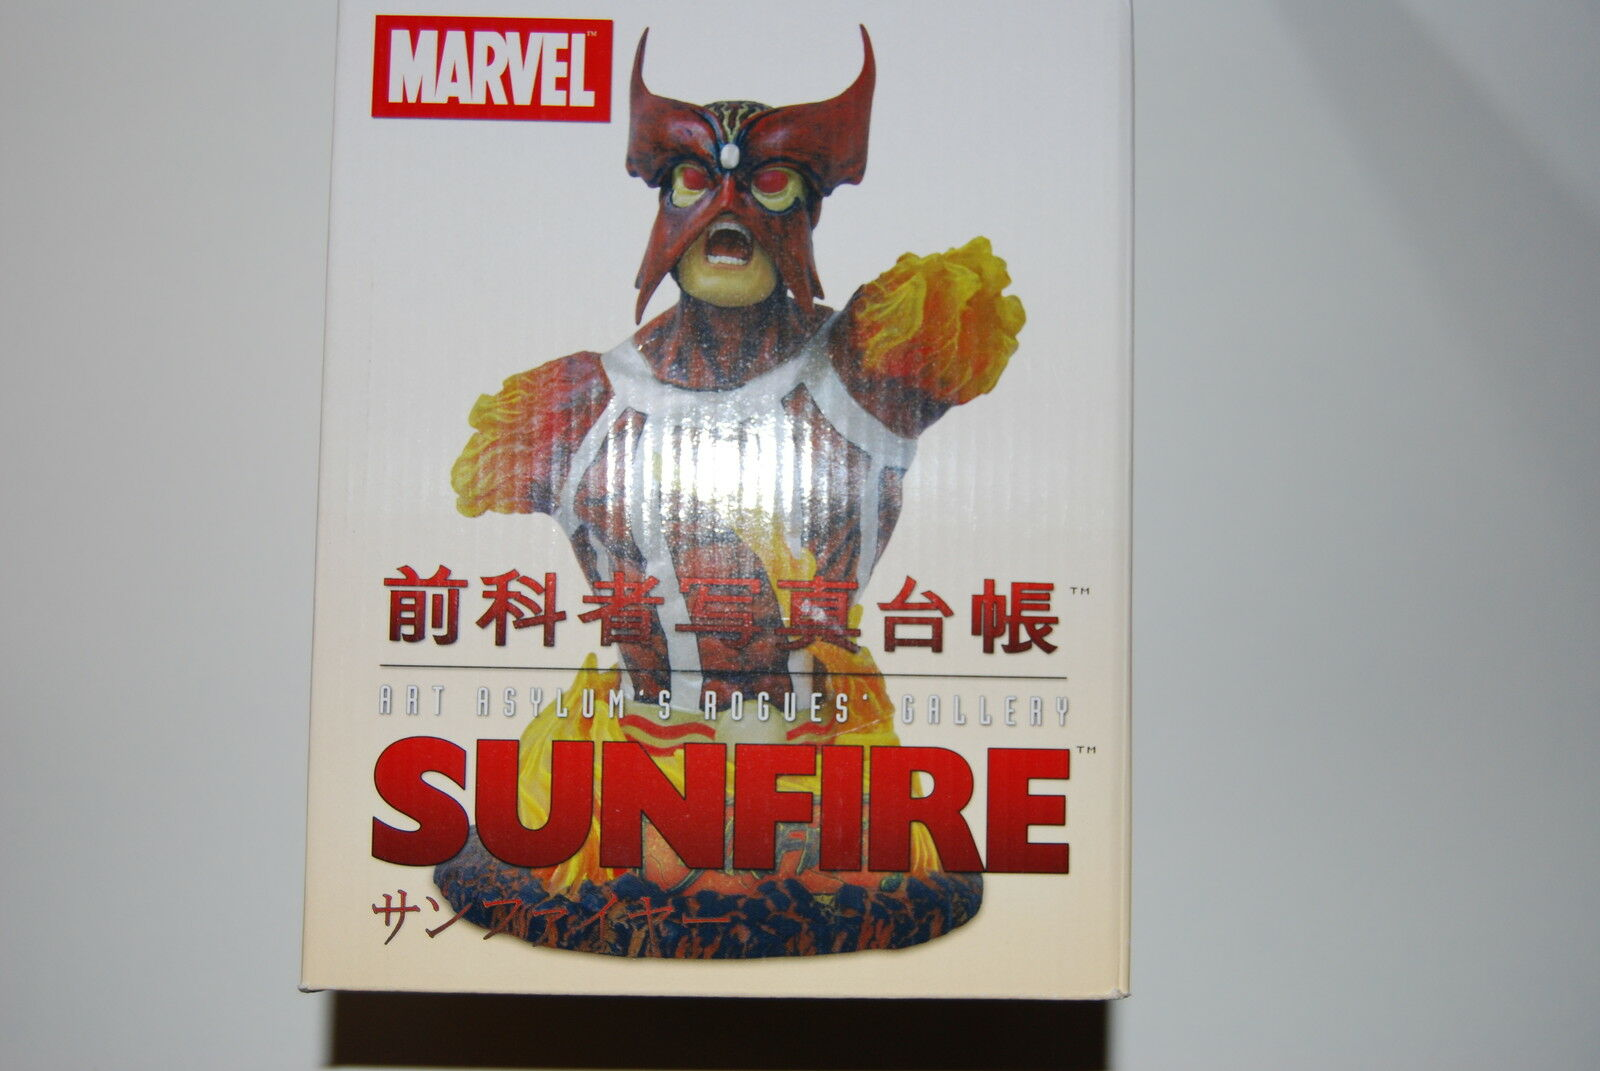 SUNFIRE ROGUE'S GALLERY BUST DIAMOND SELECT(MARVEL STATUE SIDESHOW AVENGERS NOW1